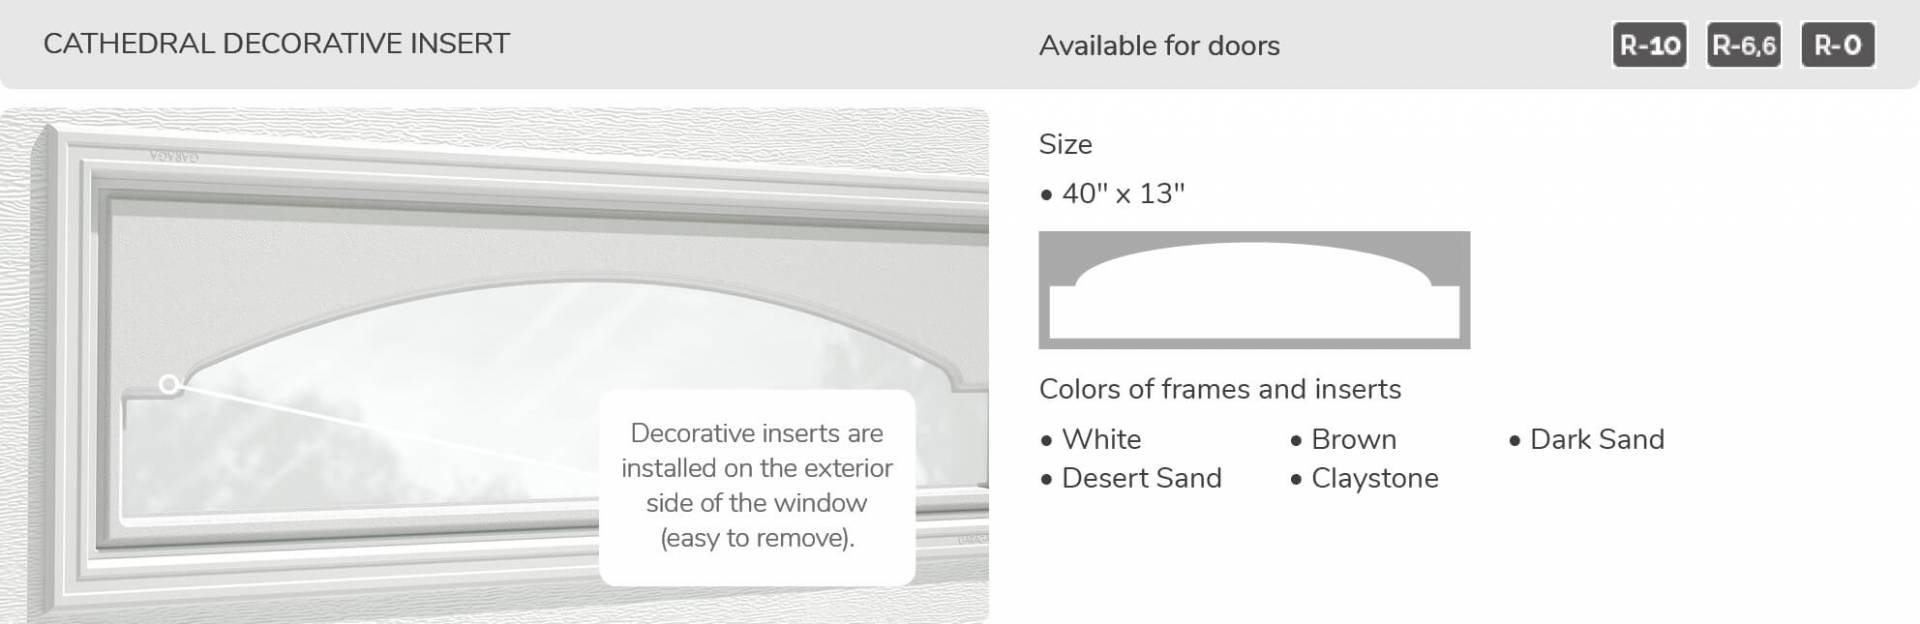 Cathedrale Decorative Insert, 40' x 13', available for doors R-10, R-6.6, R-0